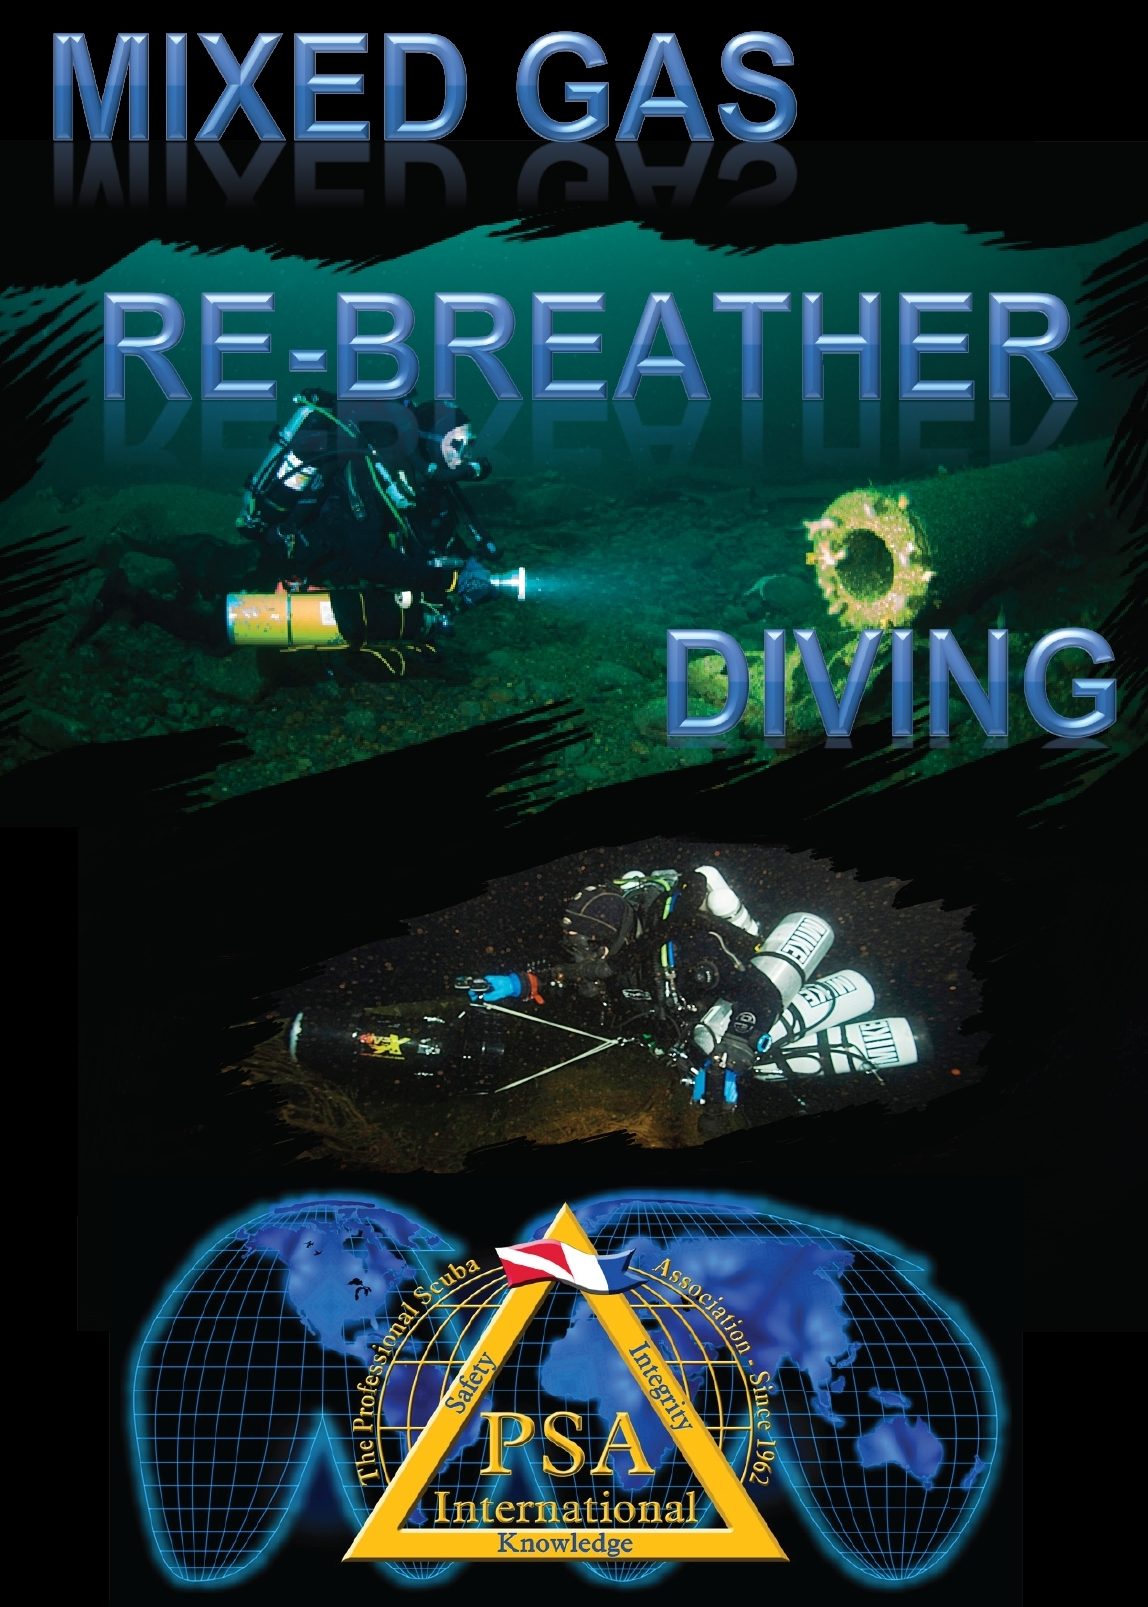 closed circuit rebreathers